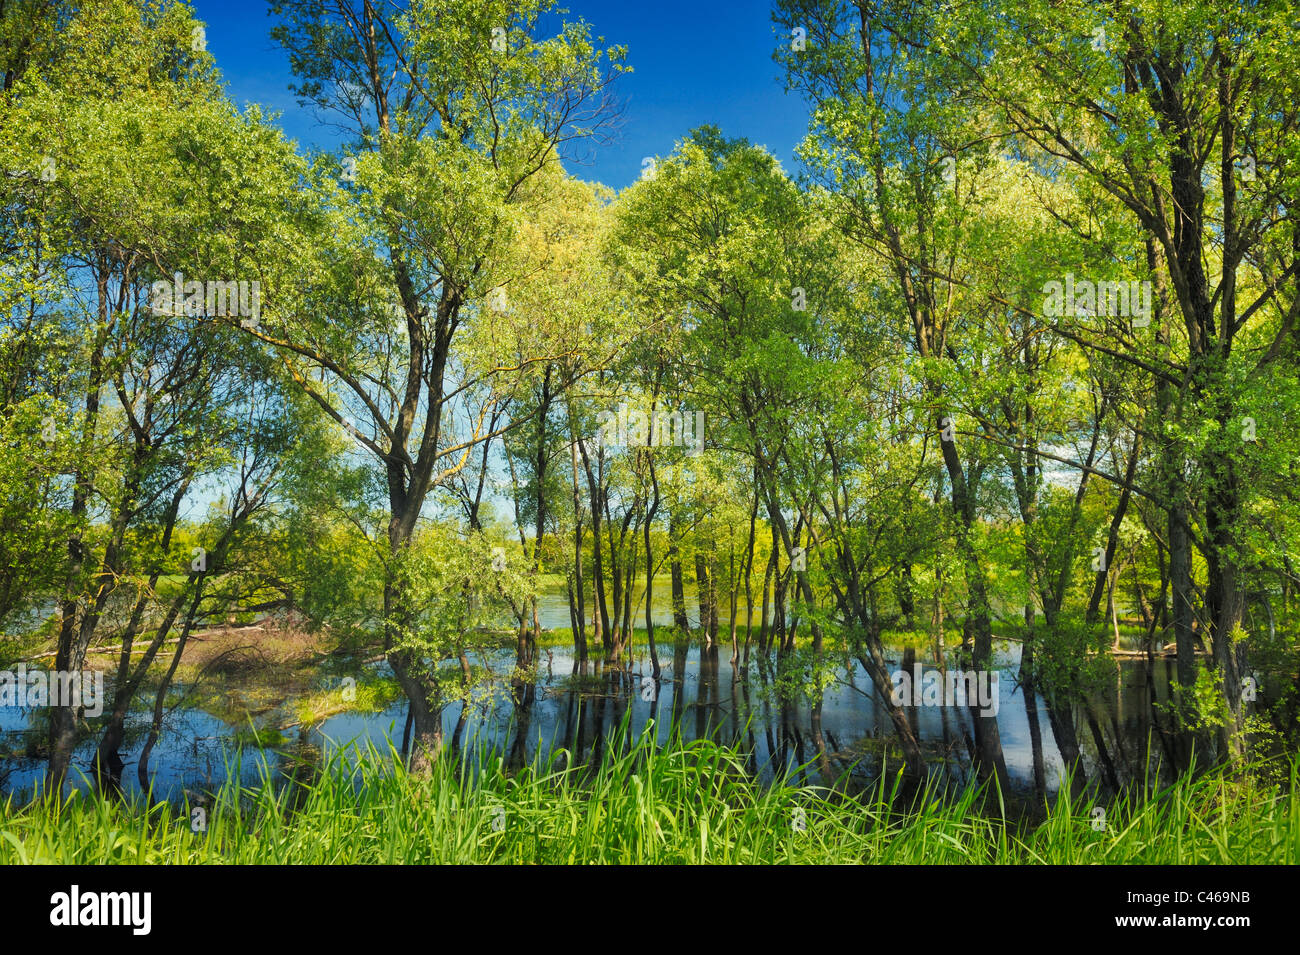 Swamp Wallpaper High Resolution Stock Photography And Images Alamy